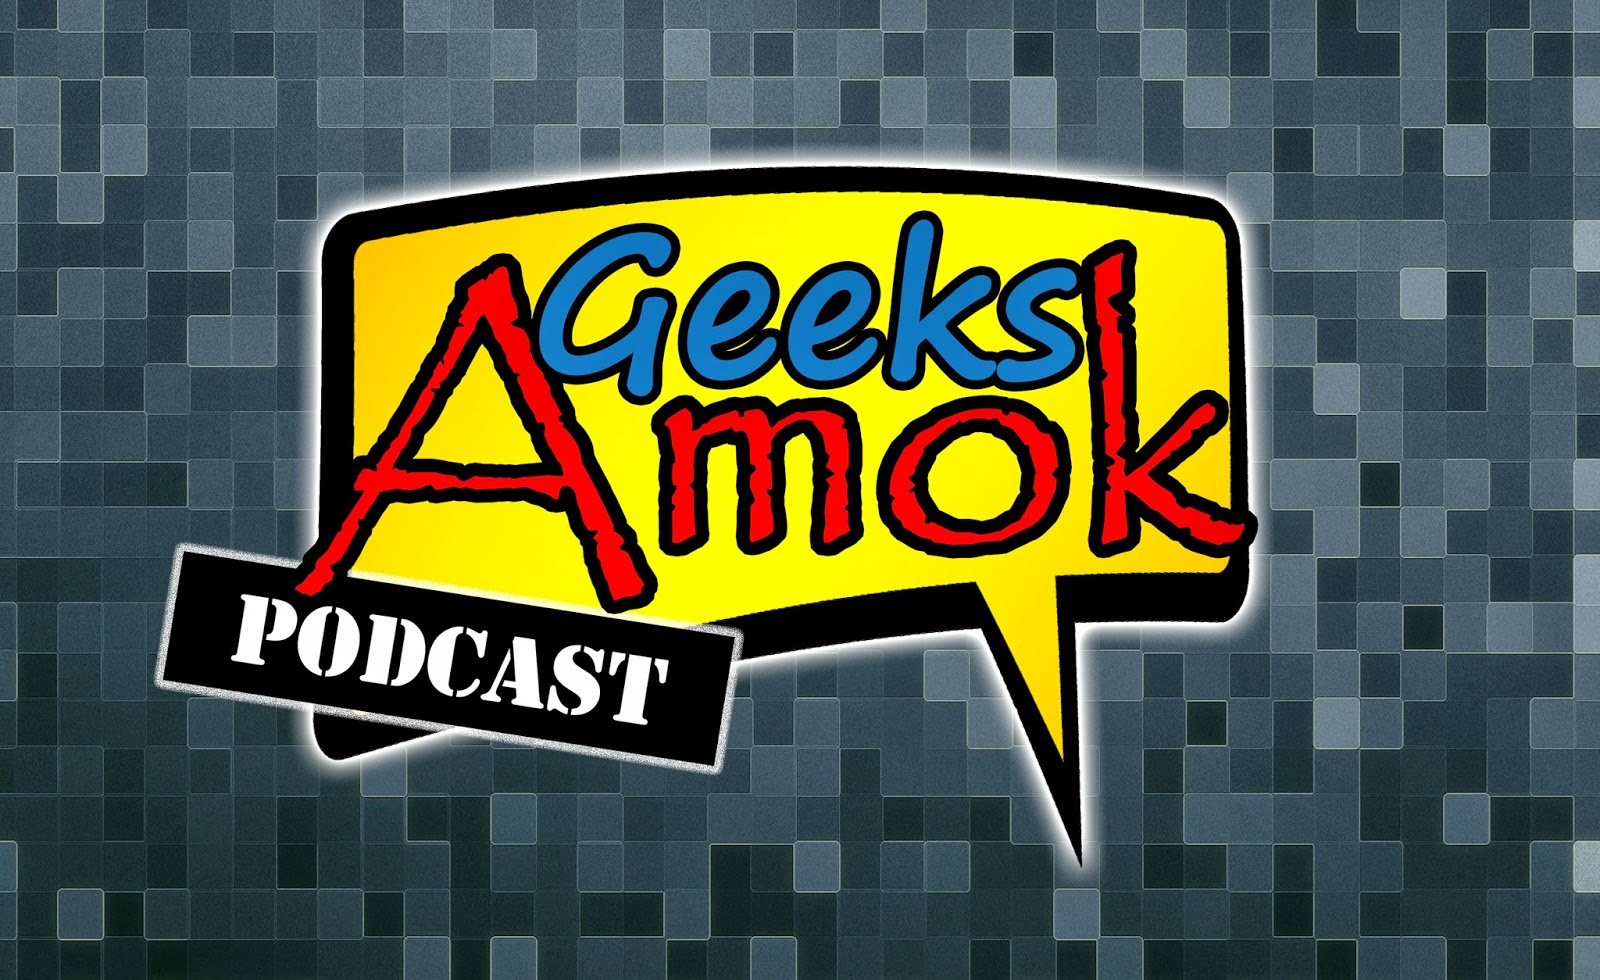 Geeks Amok Podcast